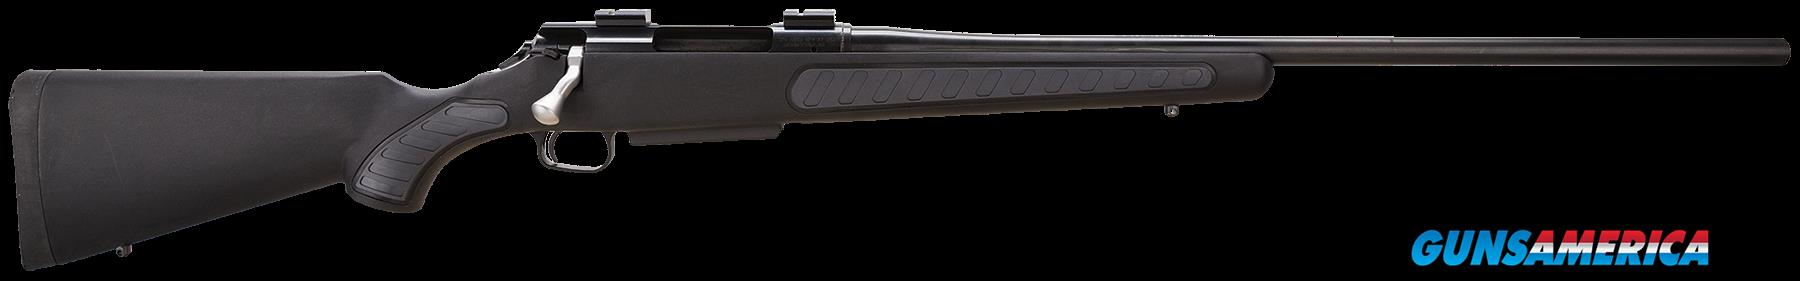 "T/C Arms 10175430 Venture Standard Bolt 338 Win Mag 24"" 3+1 Synthetic w/Rubber Panels Black Stk  Guns > Rifles > Thompson Center Rifles > Venture"